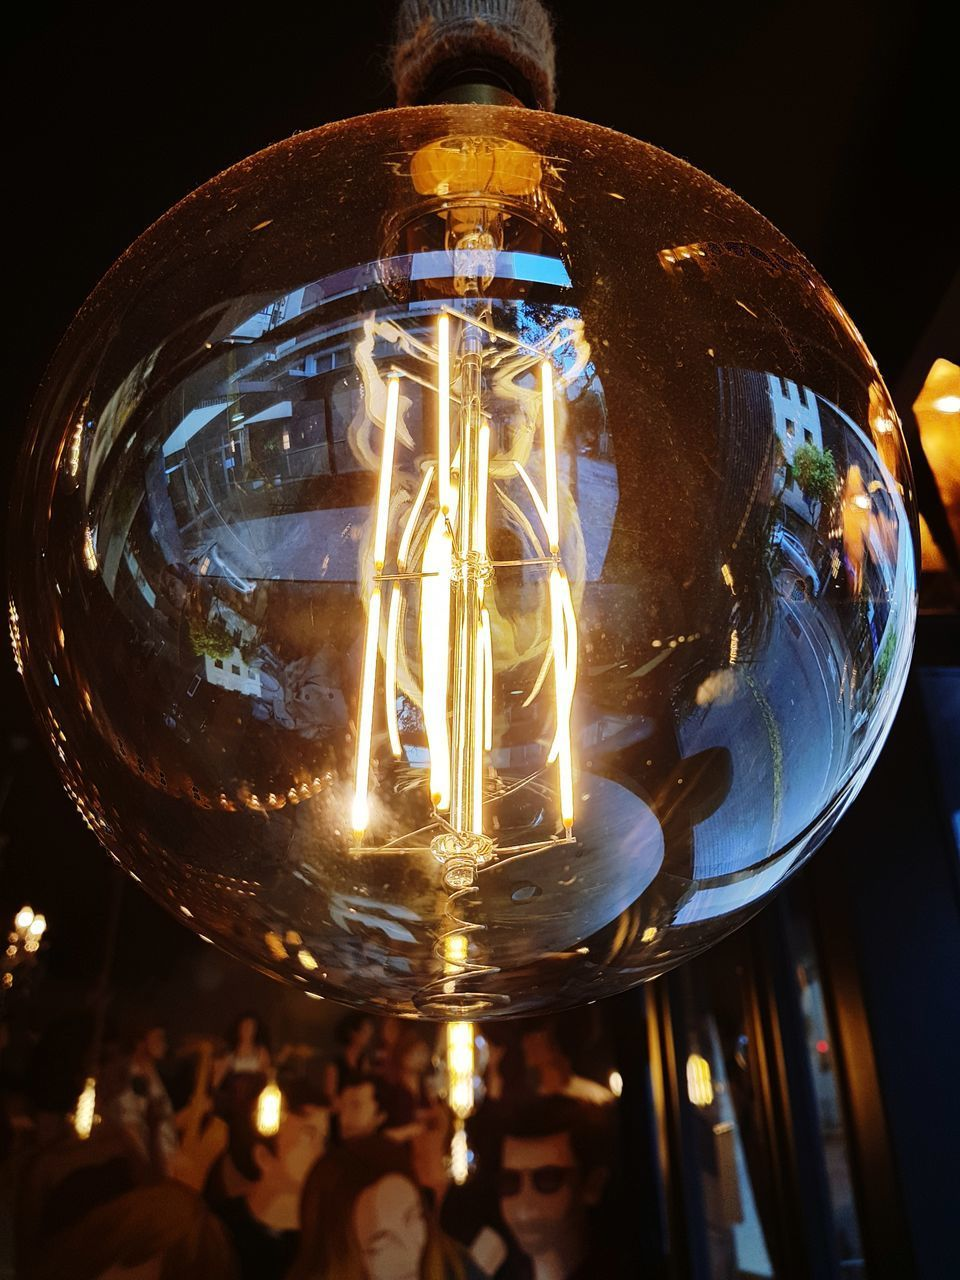 LOW ANGLE VIEW OF ILLUMINATED LIGHT BULB HANGING IN DARK